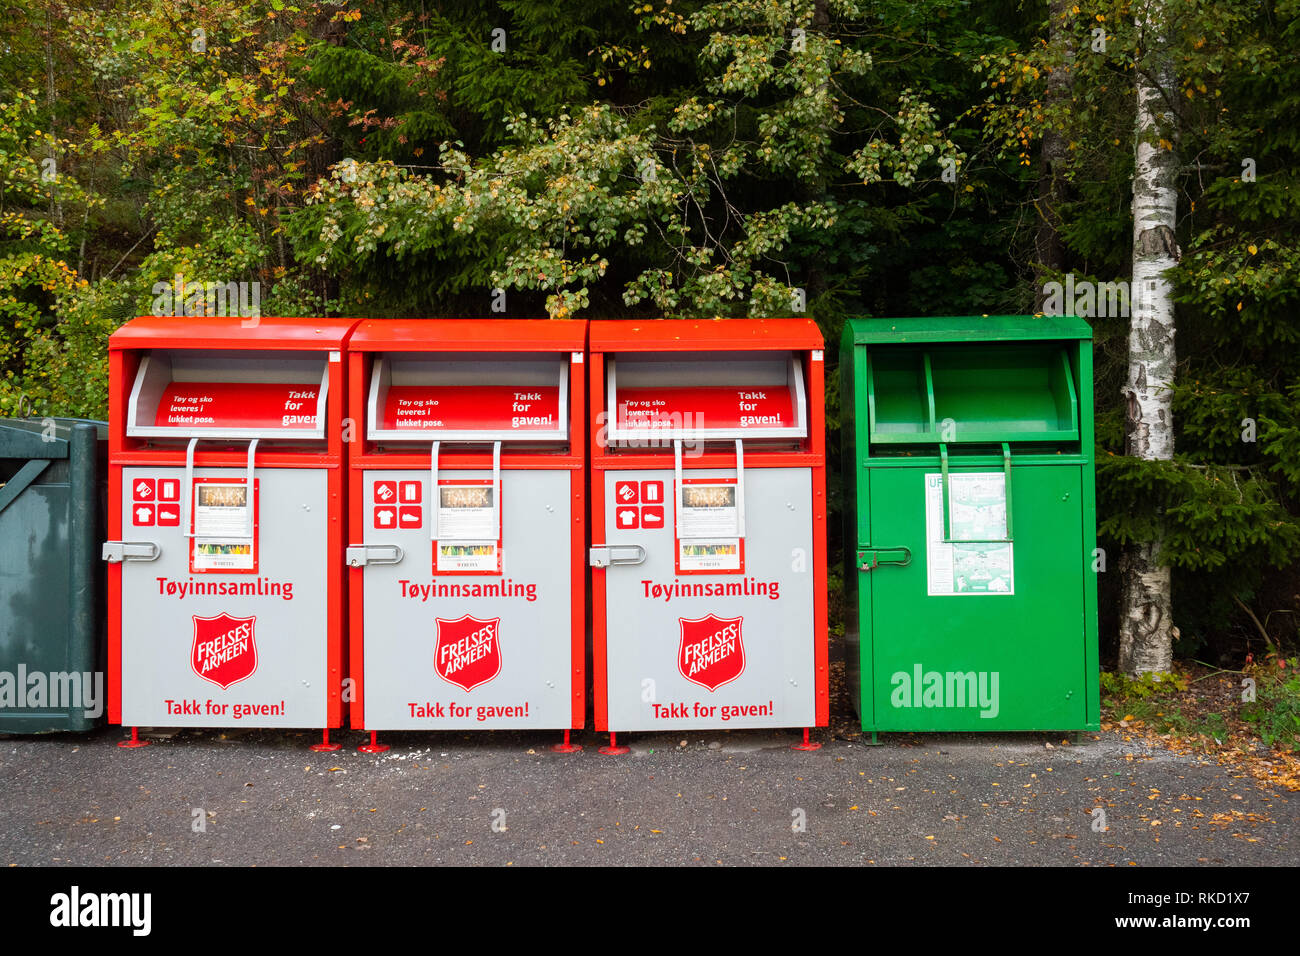 Four recycling bins for second hand clothes in Norway - Stock Image